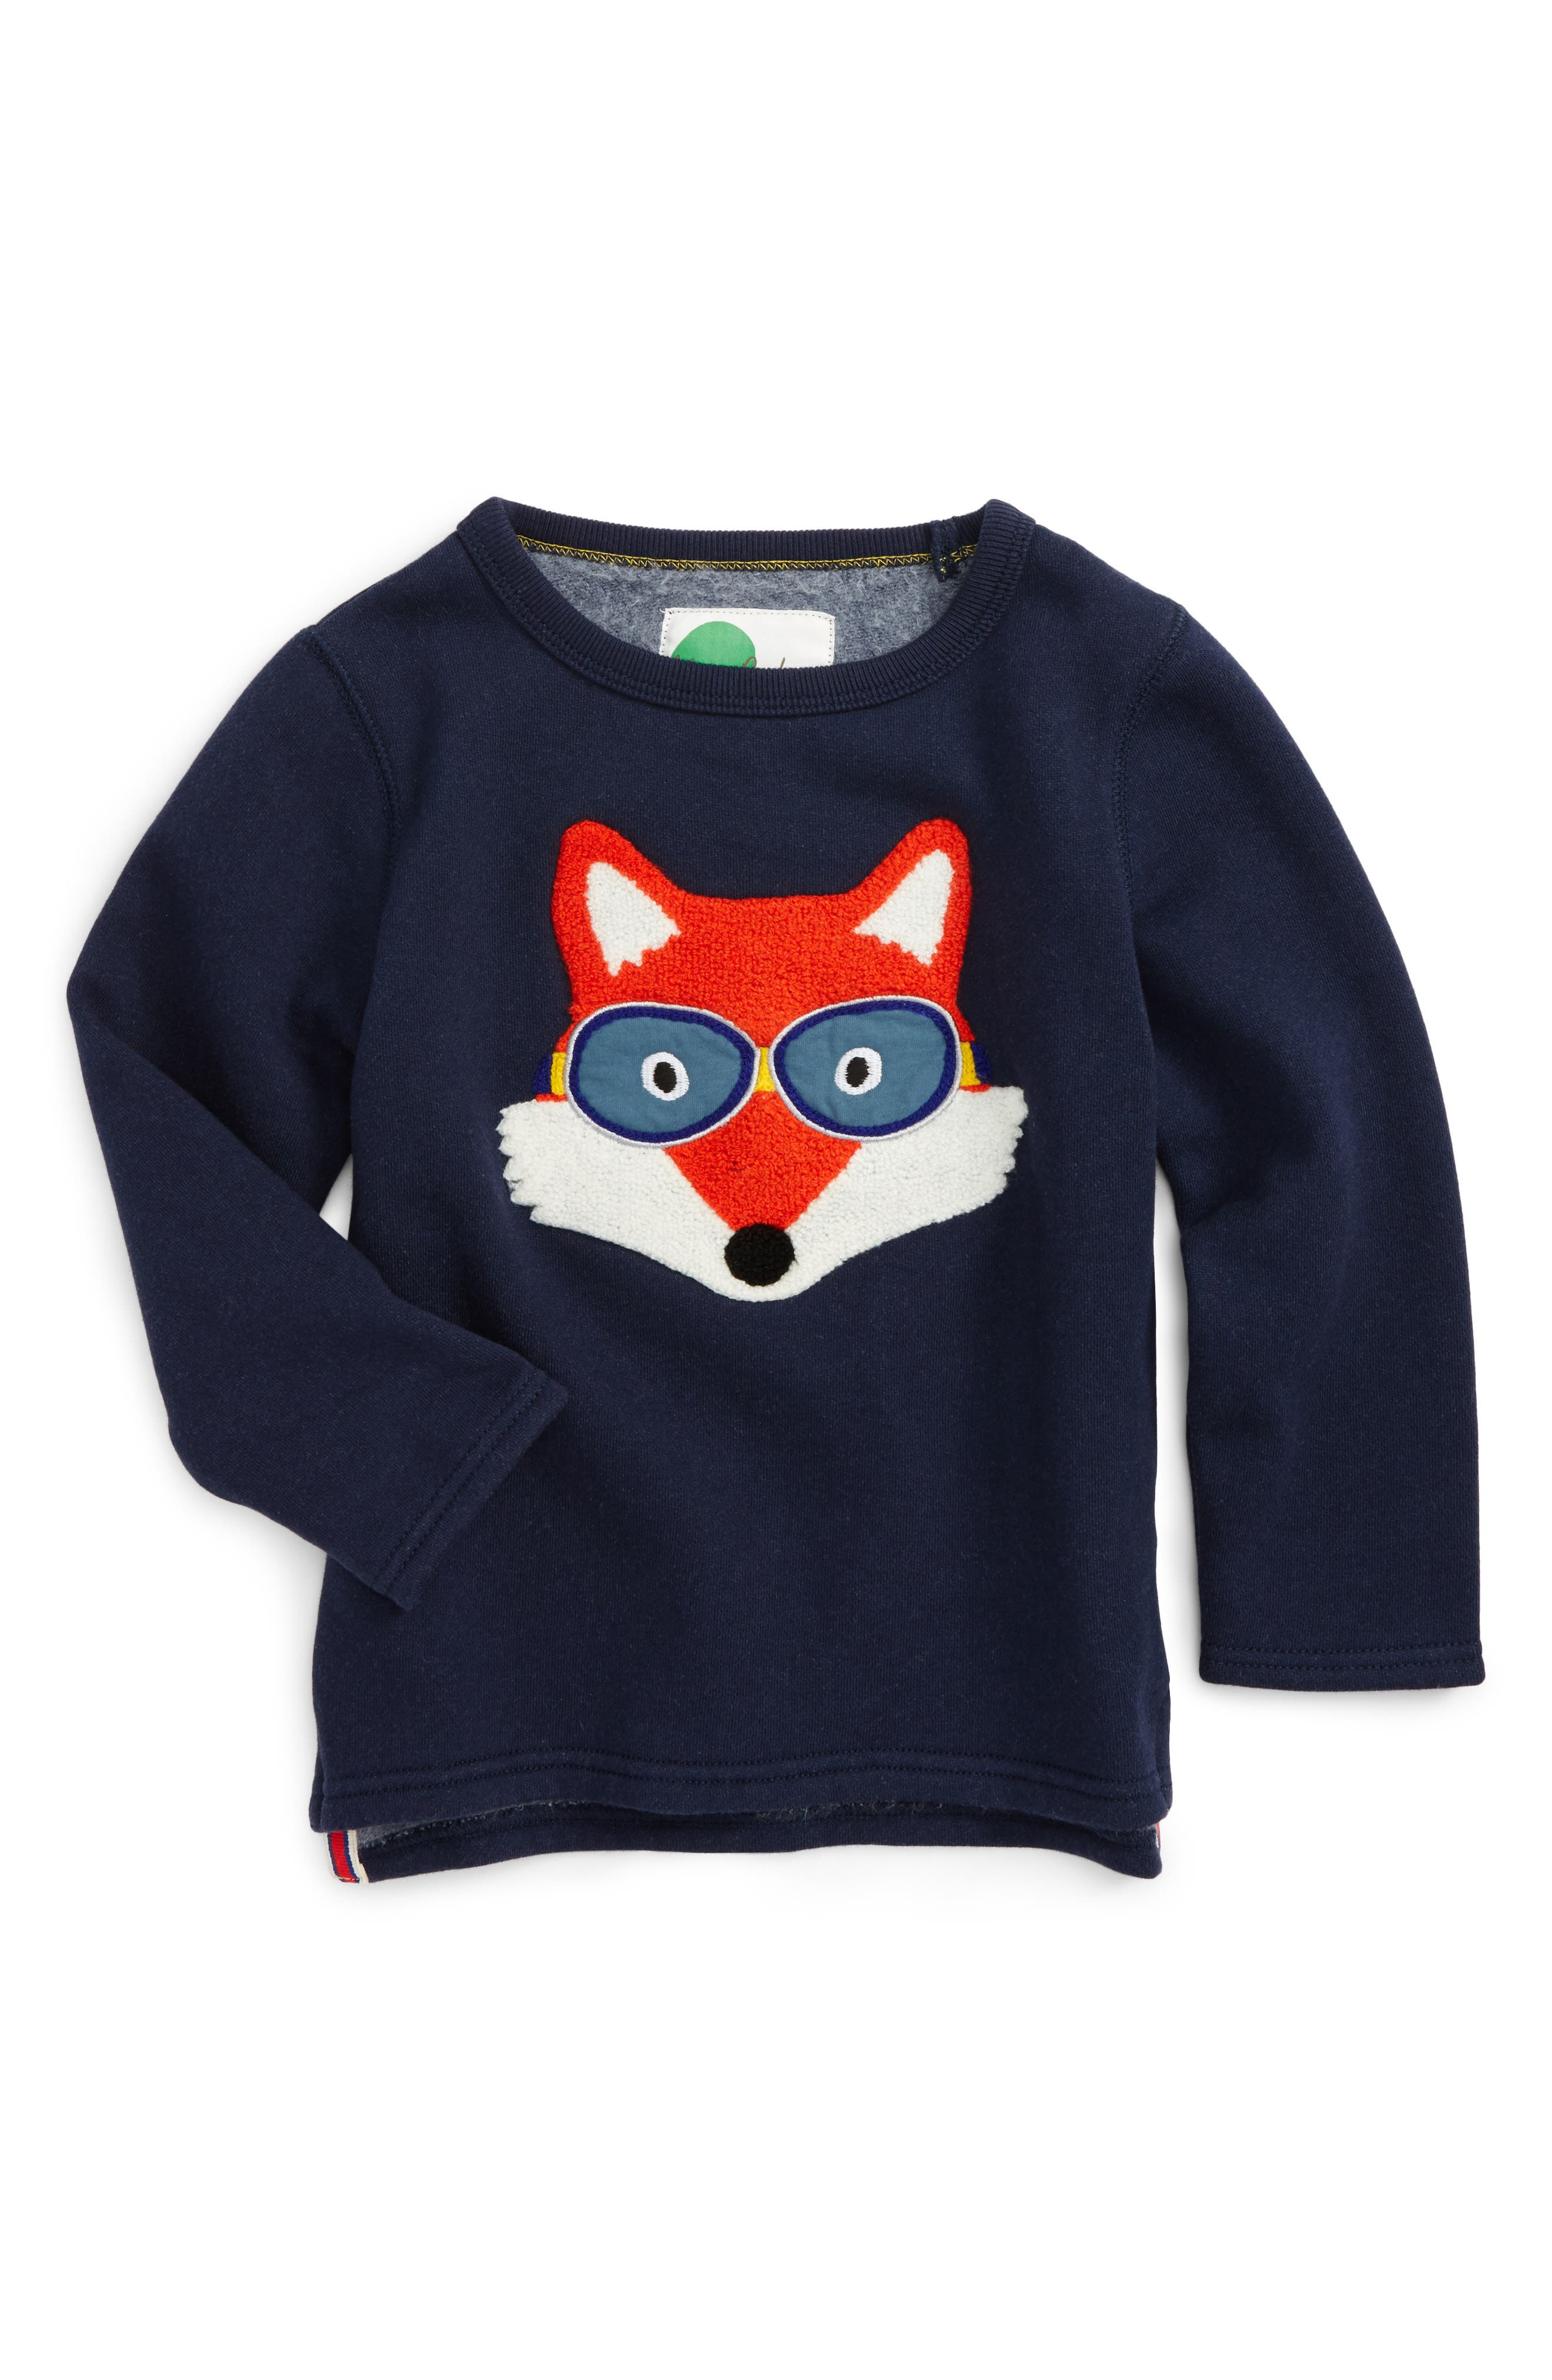 Main Image - Mini Boden Open Road Sweatshirt (Toddler Boys, Little Boys & Big Boys)